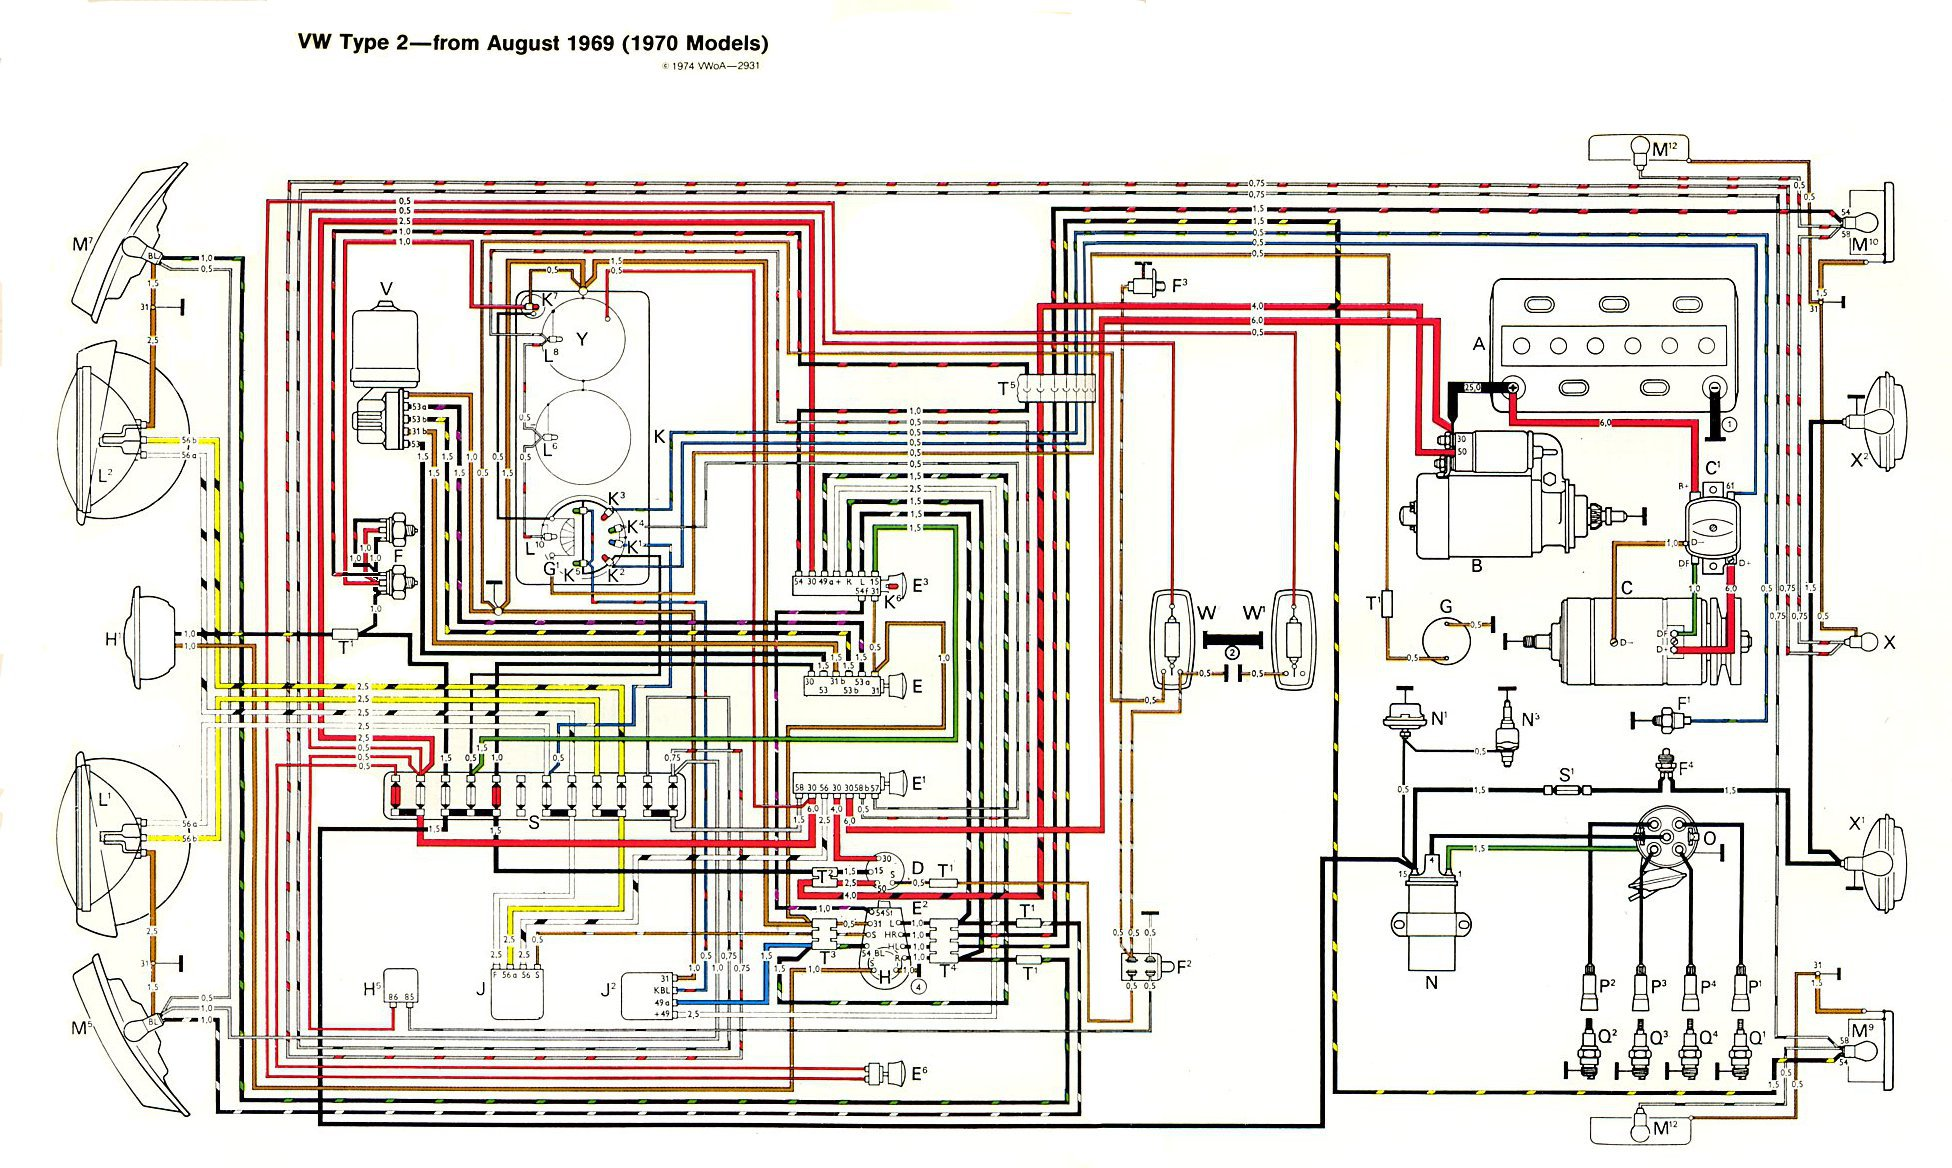 baybus_70 69 vw wiring diagram 69 vw wiring diagram speedometer \u2022 free 1969 vw squareback wiring diagram at webbmarketing.co